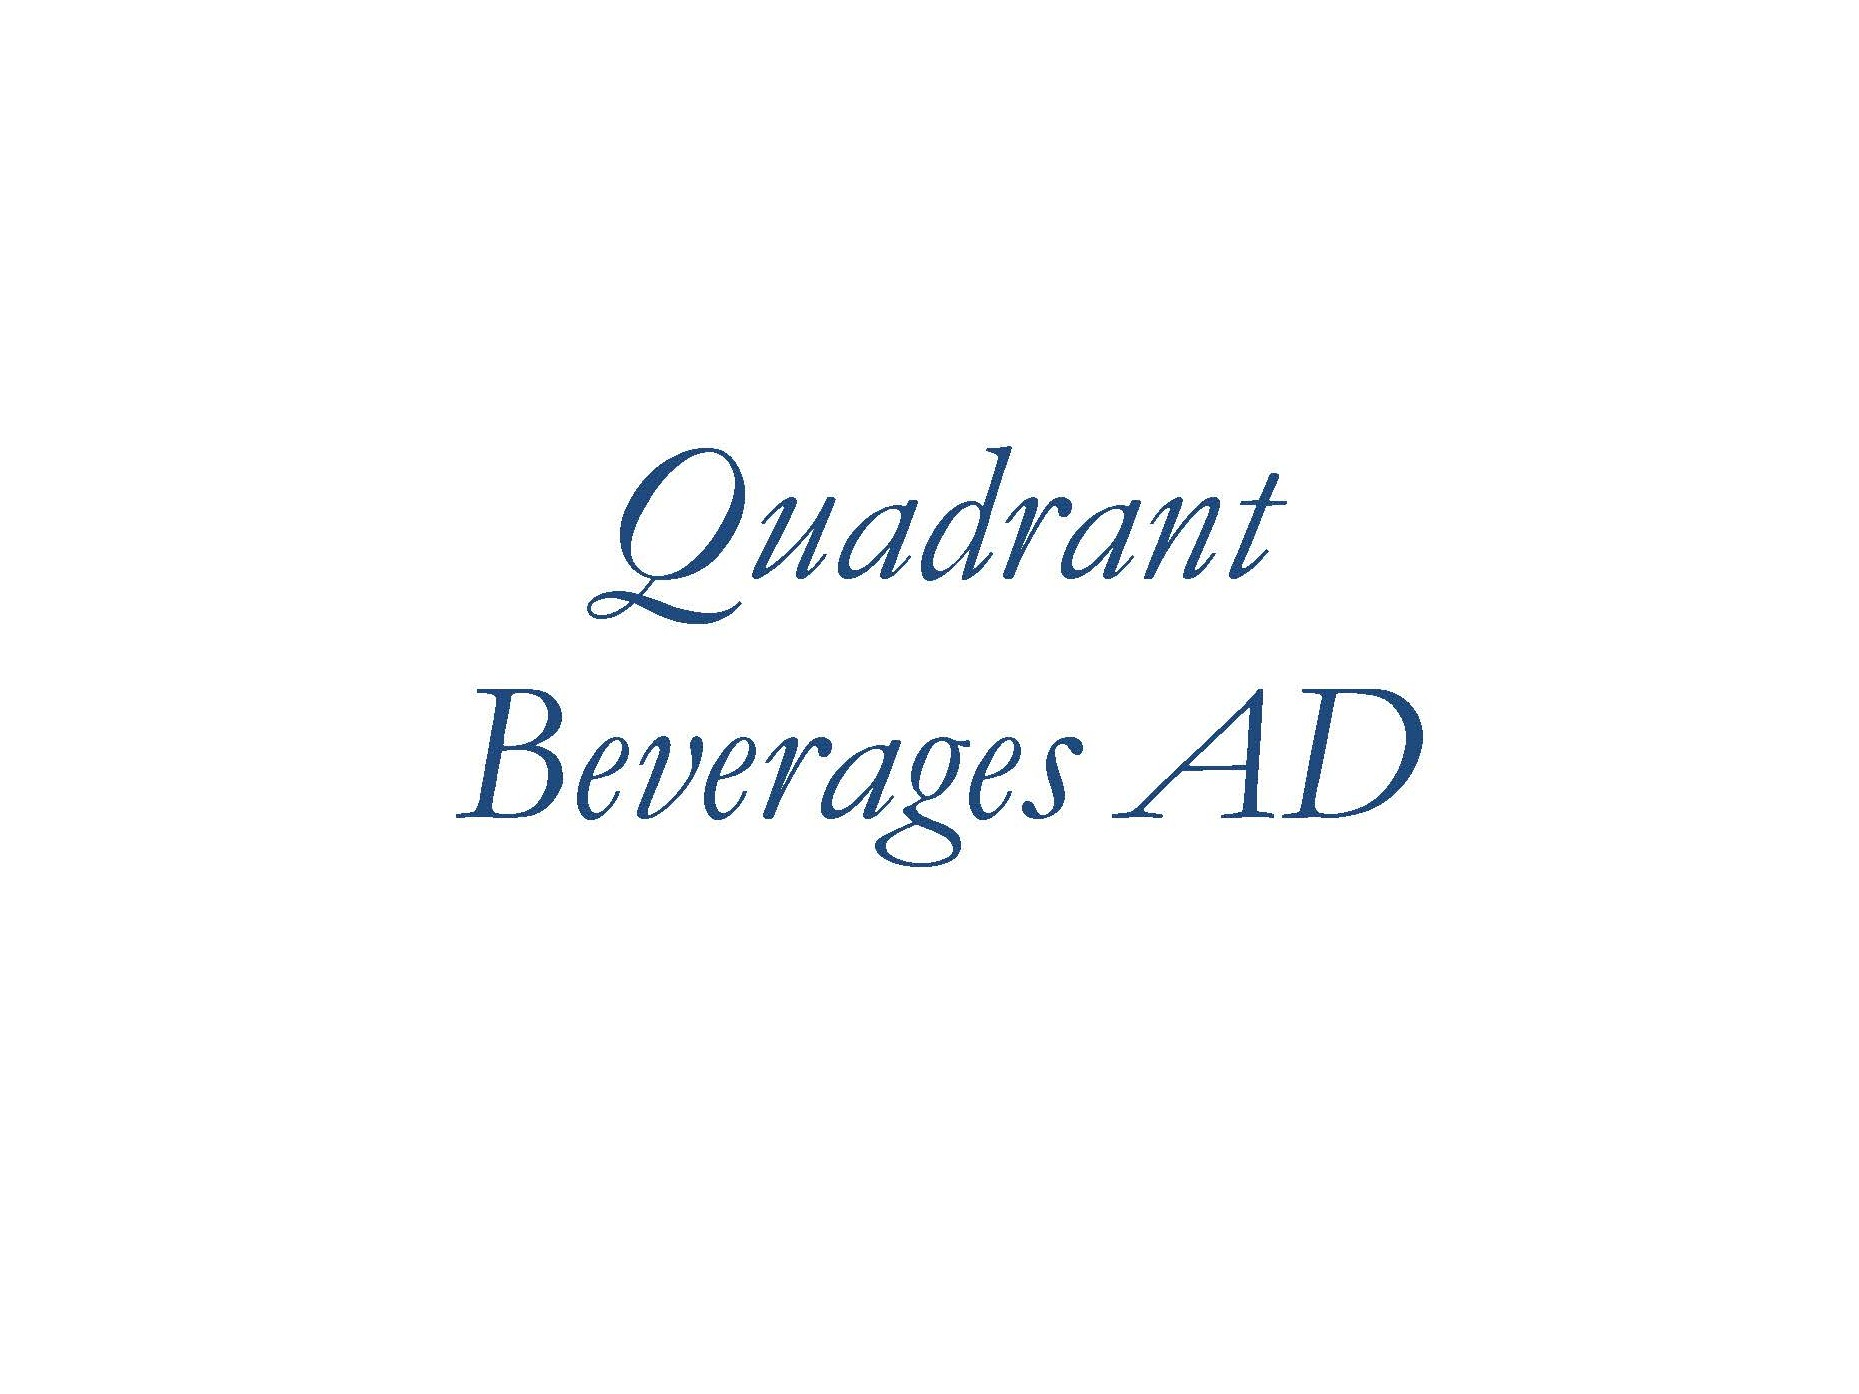 Quadrant Beverages